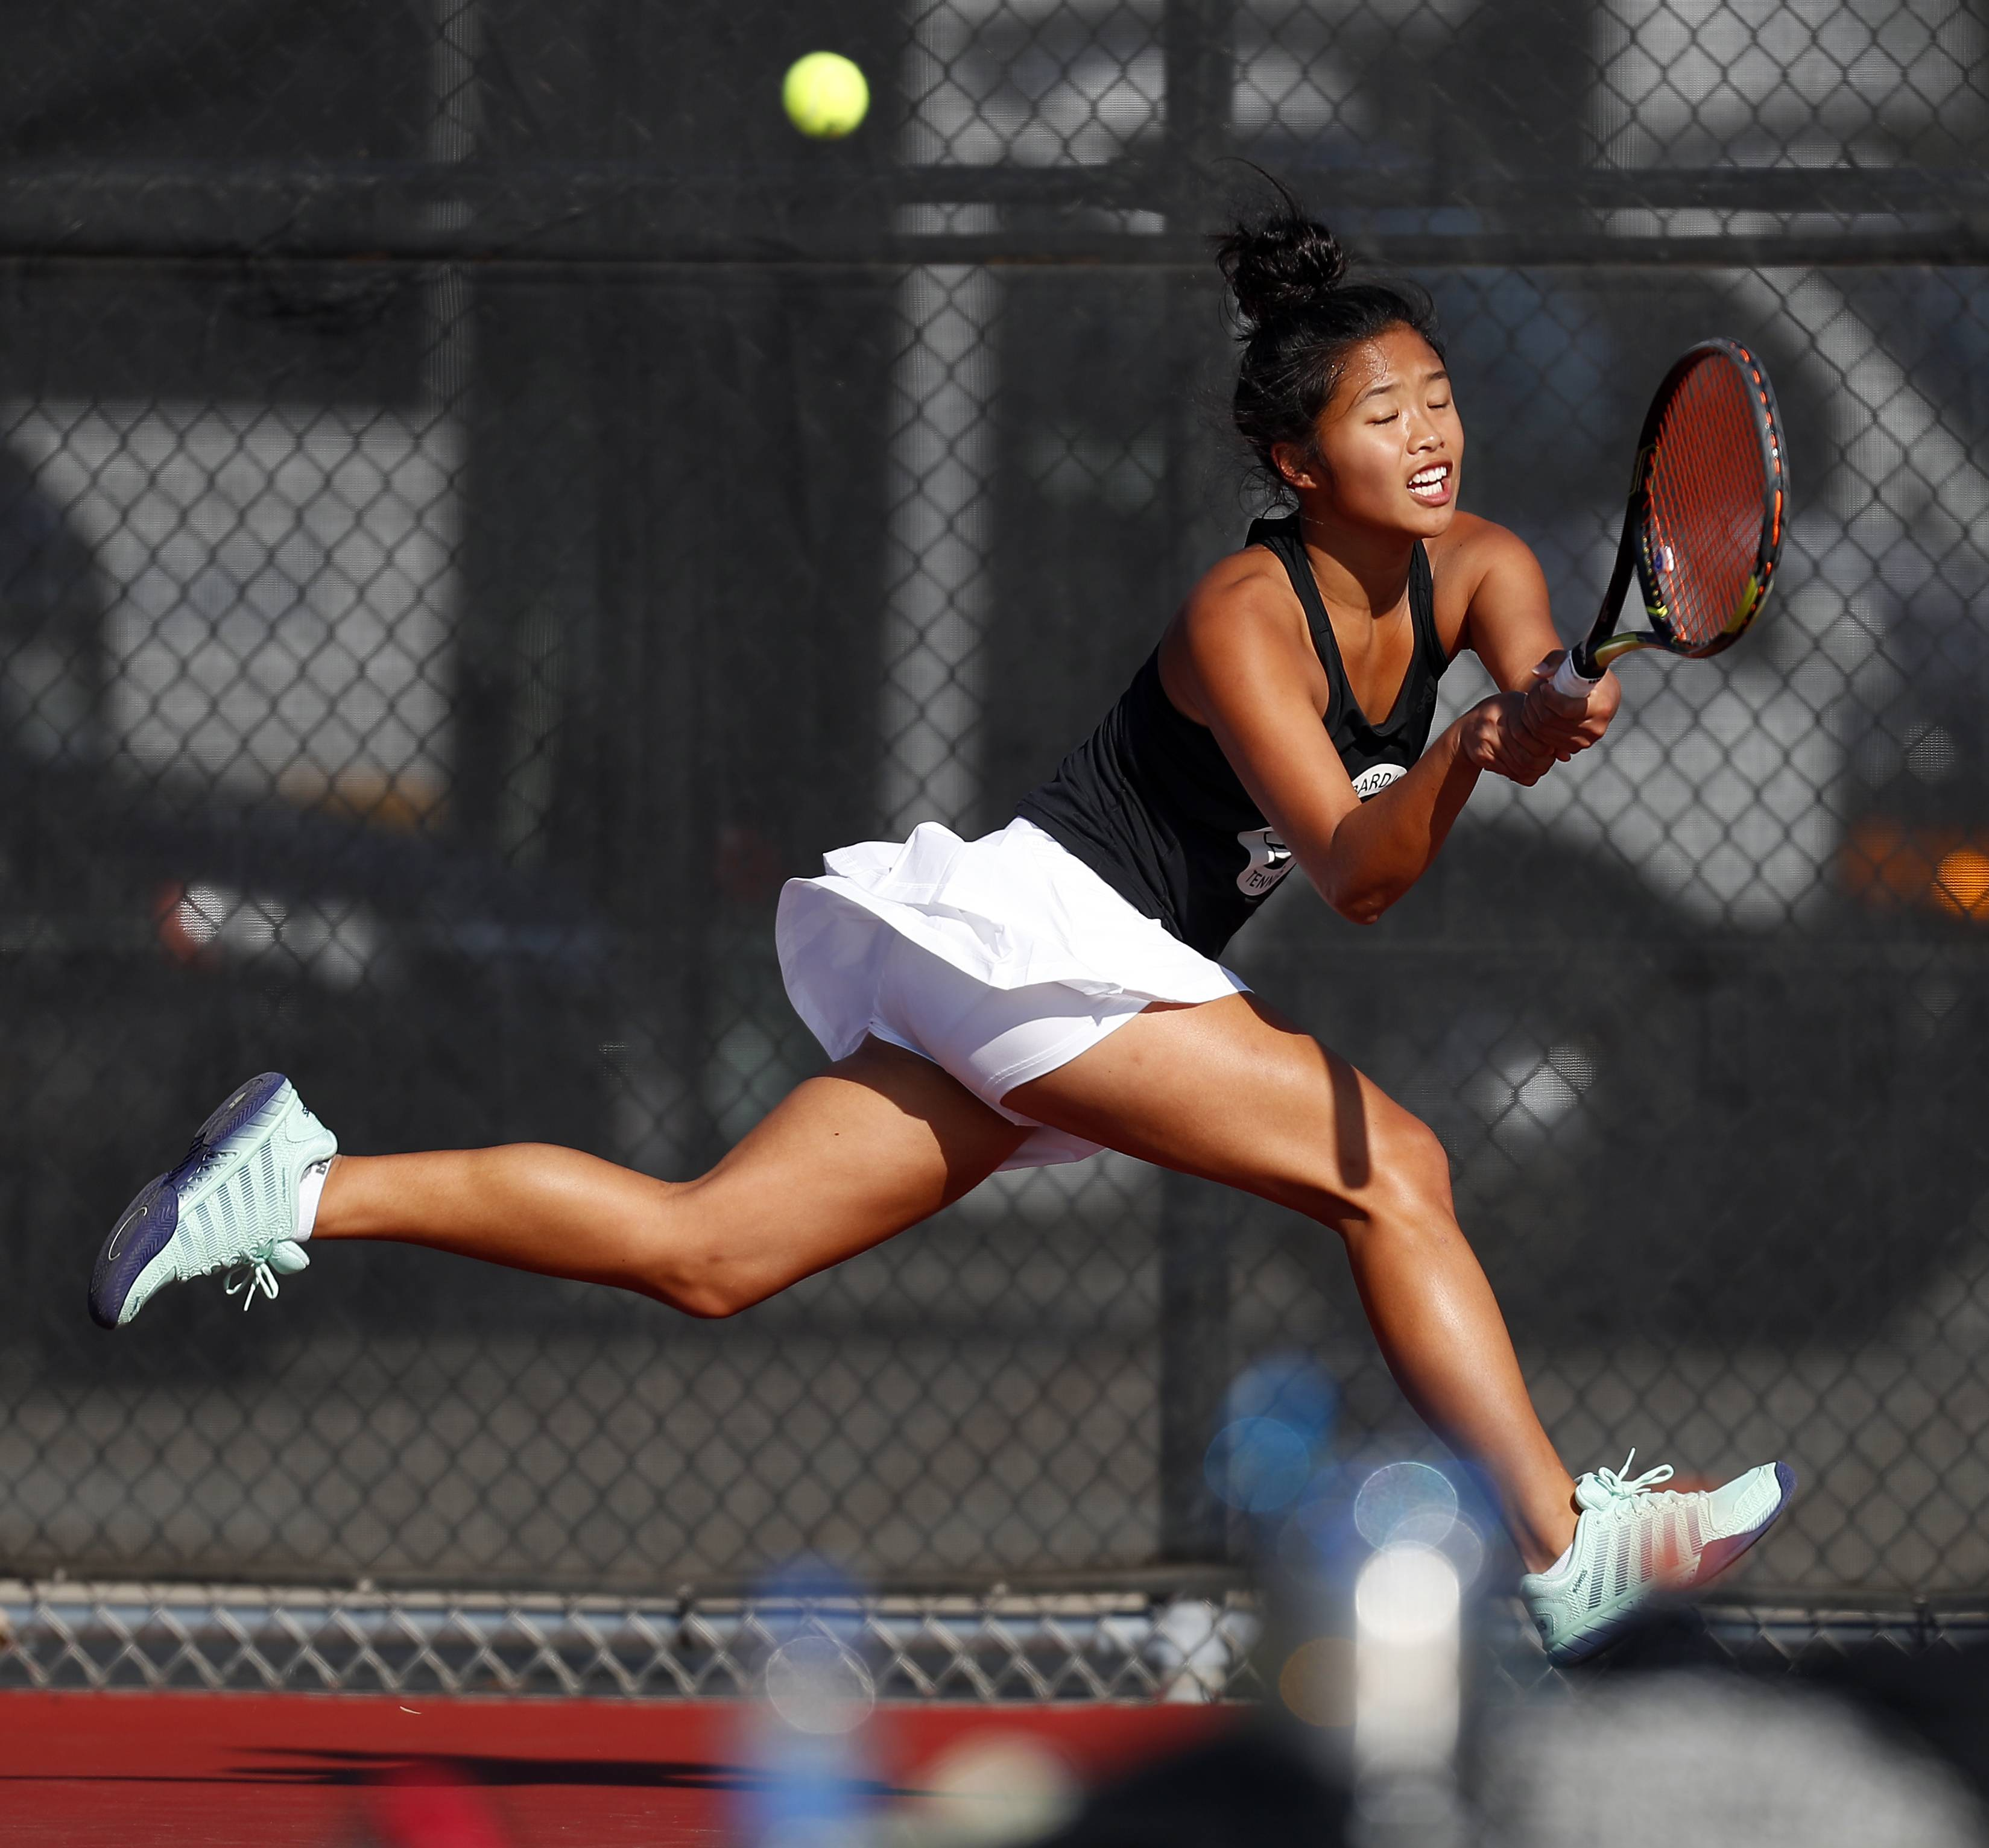 Sienna Lopez of Glenbard West competes Saturday during the St. Charles East girls tennis sectional.